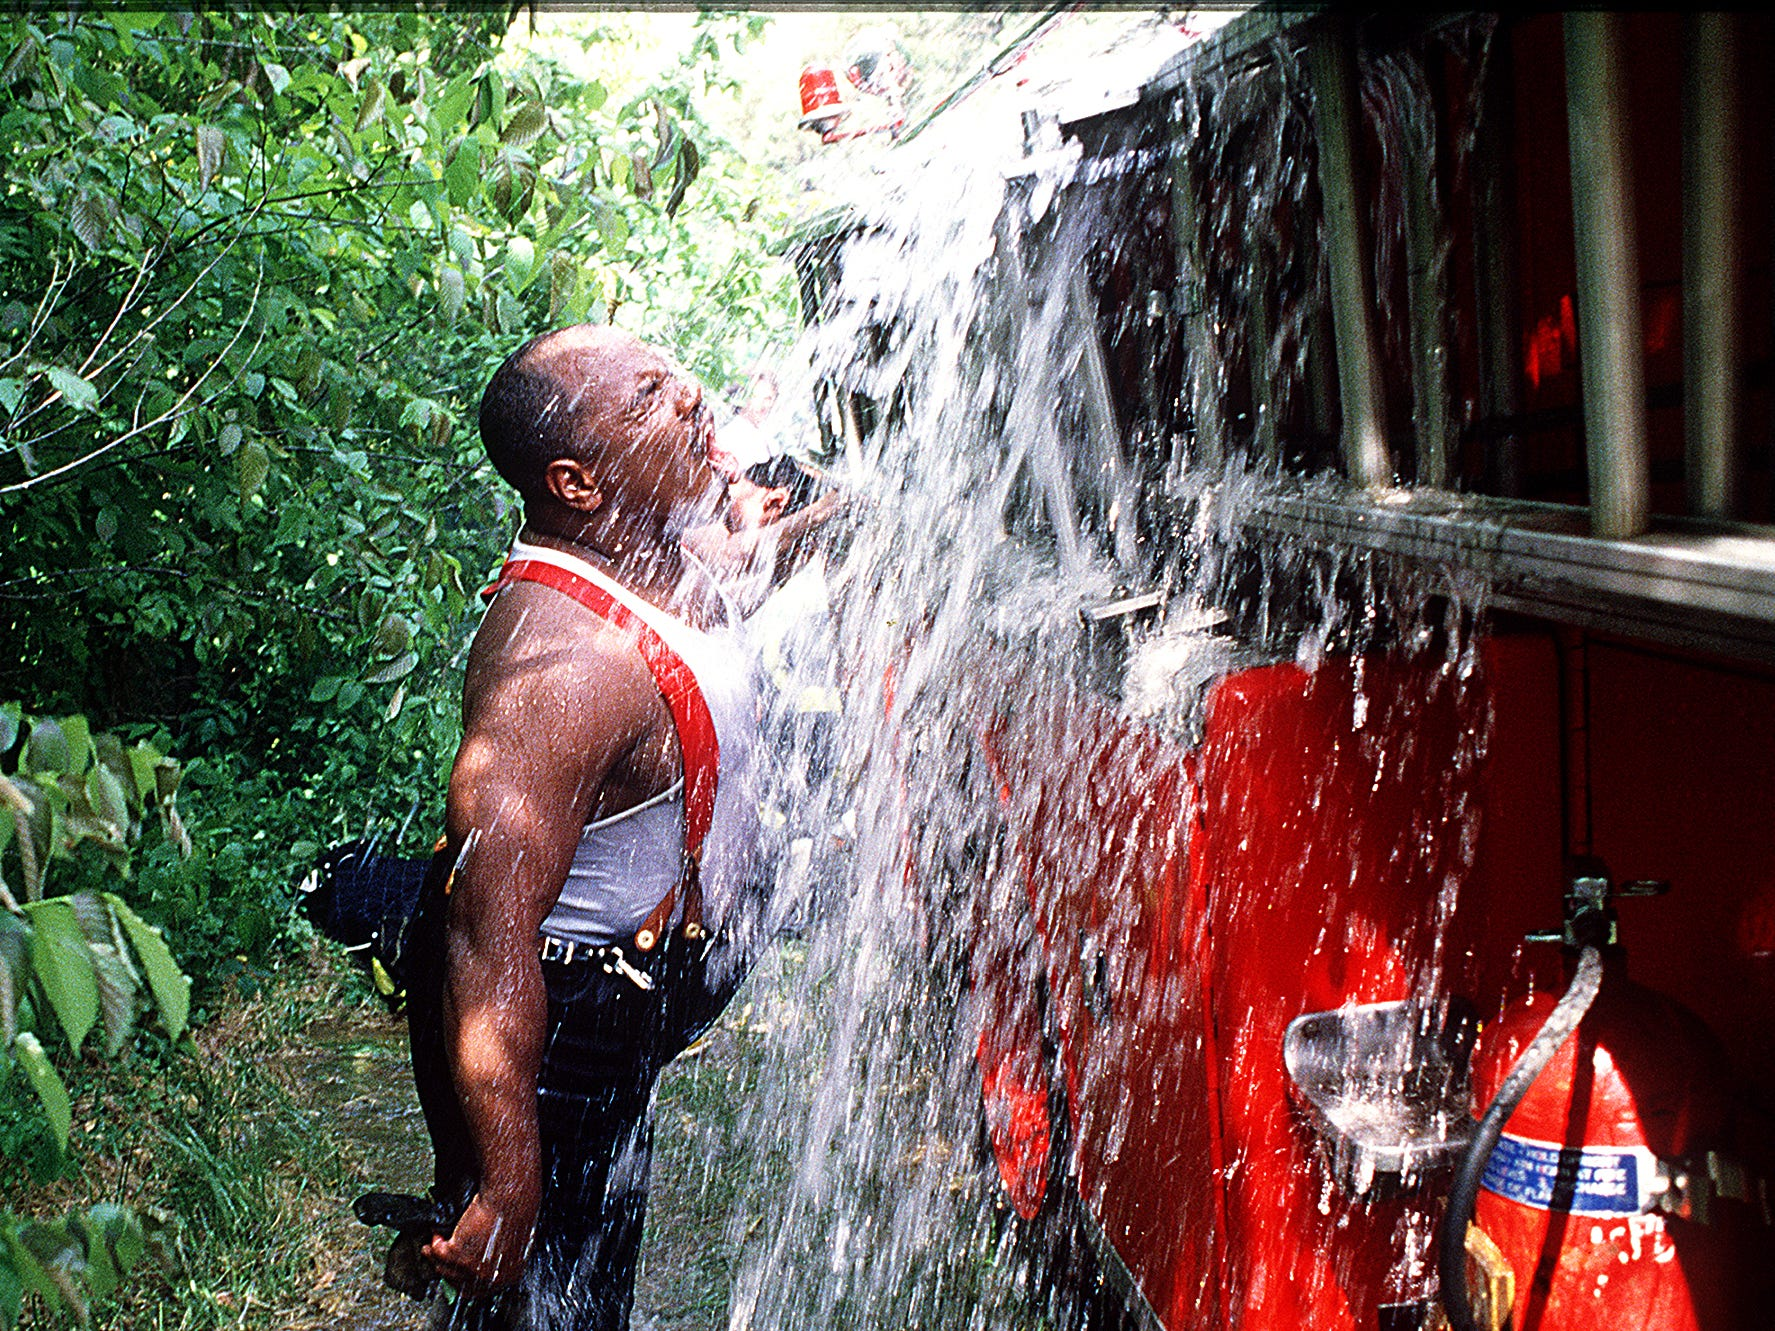 Knoxville firefighter James Anderson takes advantage of the overflow from a truck Thursday, May 16, 1990 to cool down after battling the old Halls Elementary school blaze.